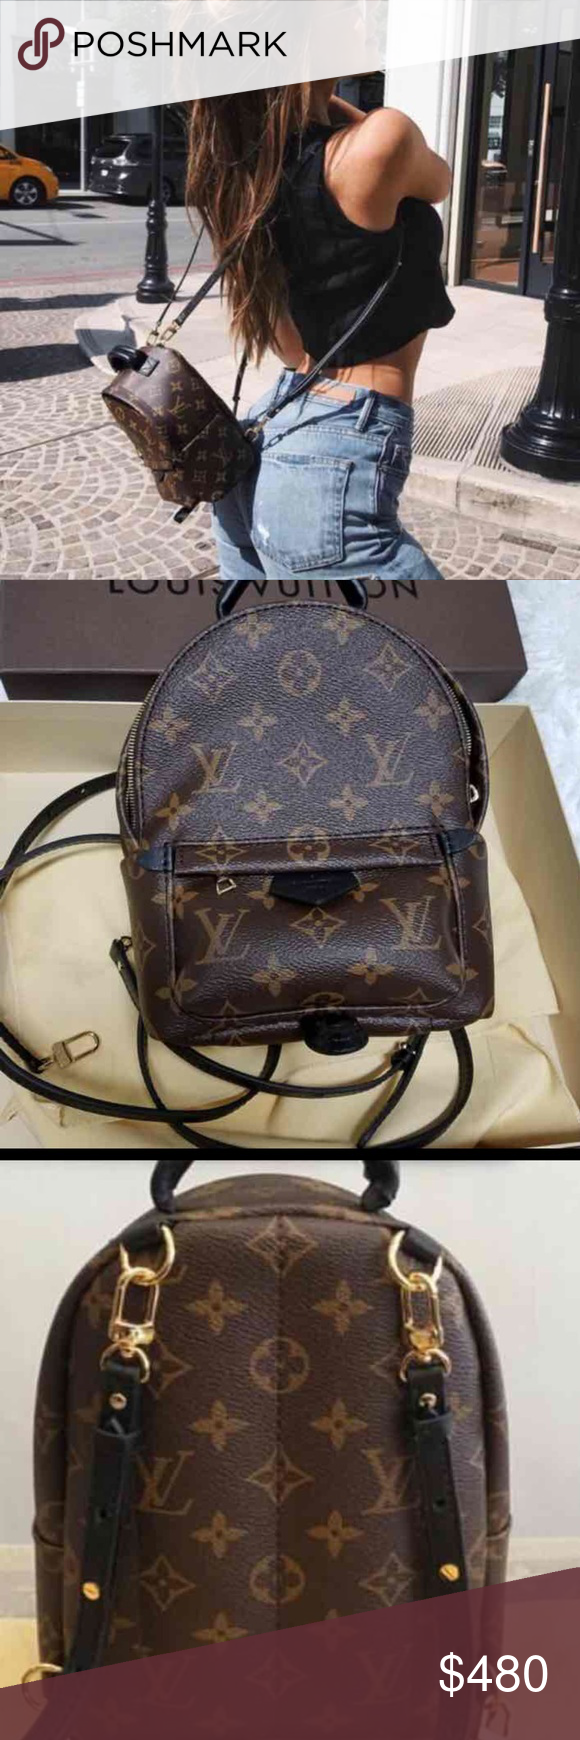 The Mini Palm Springs backpack one in soft Monogram canvas sports a  multi-positional strap for cross-body use. Louis Vuitton Bags Crossbody Bags f8bd45c084